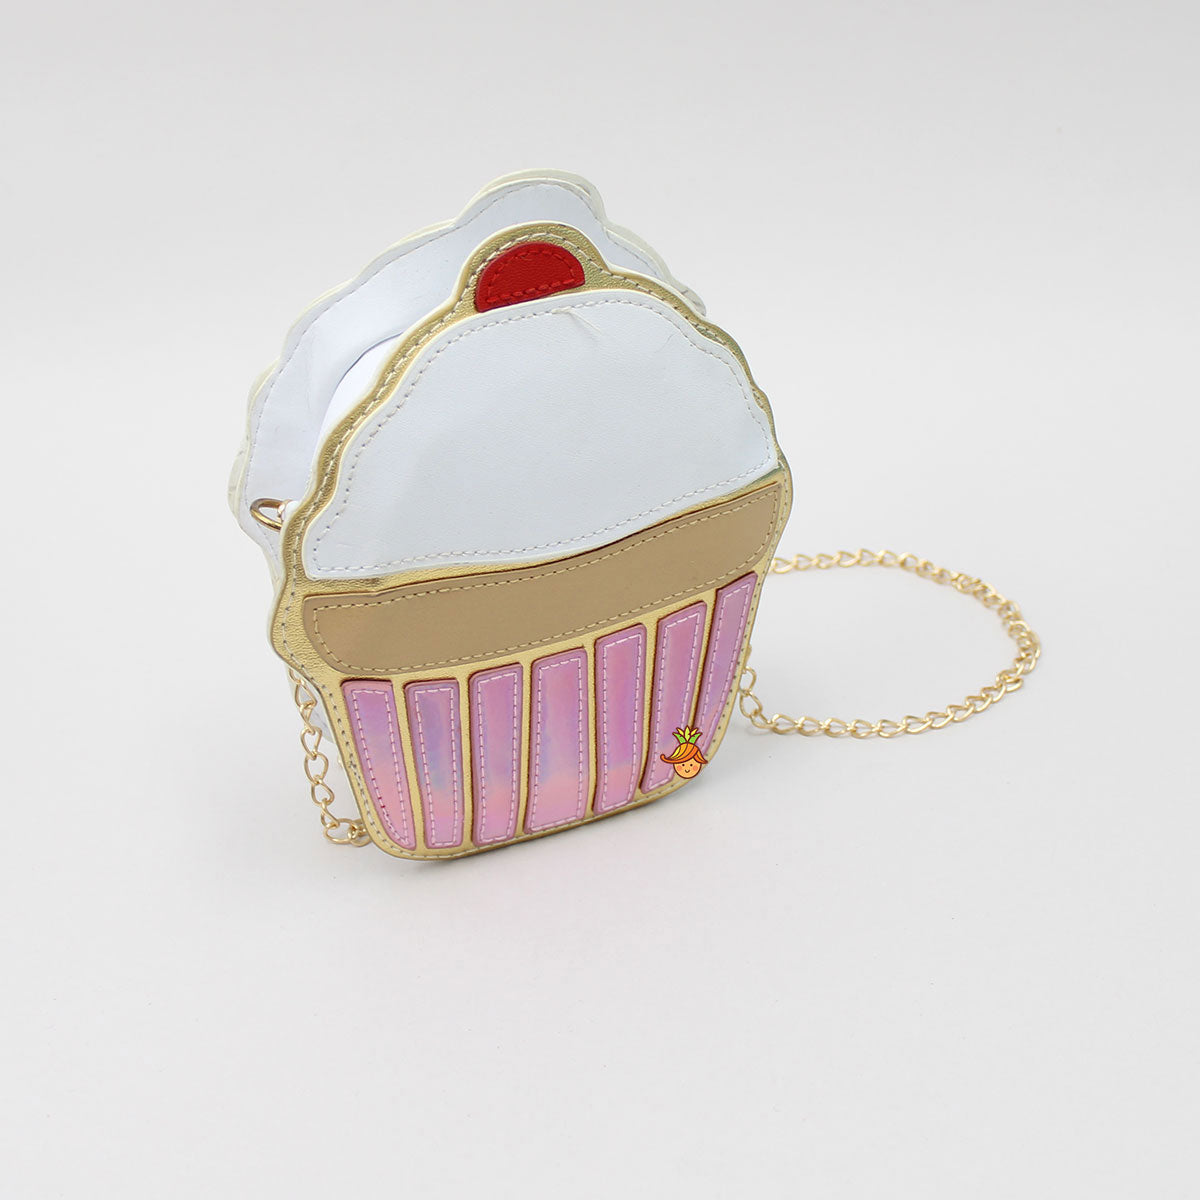 Cup Cake Sling Bag